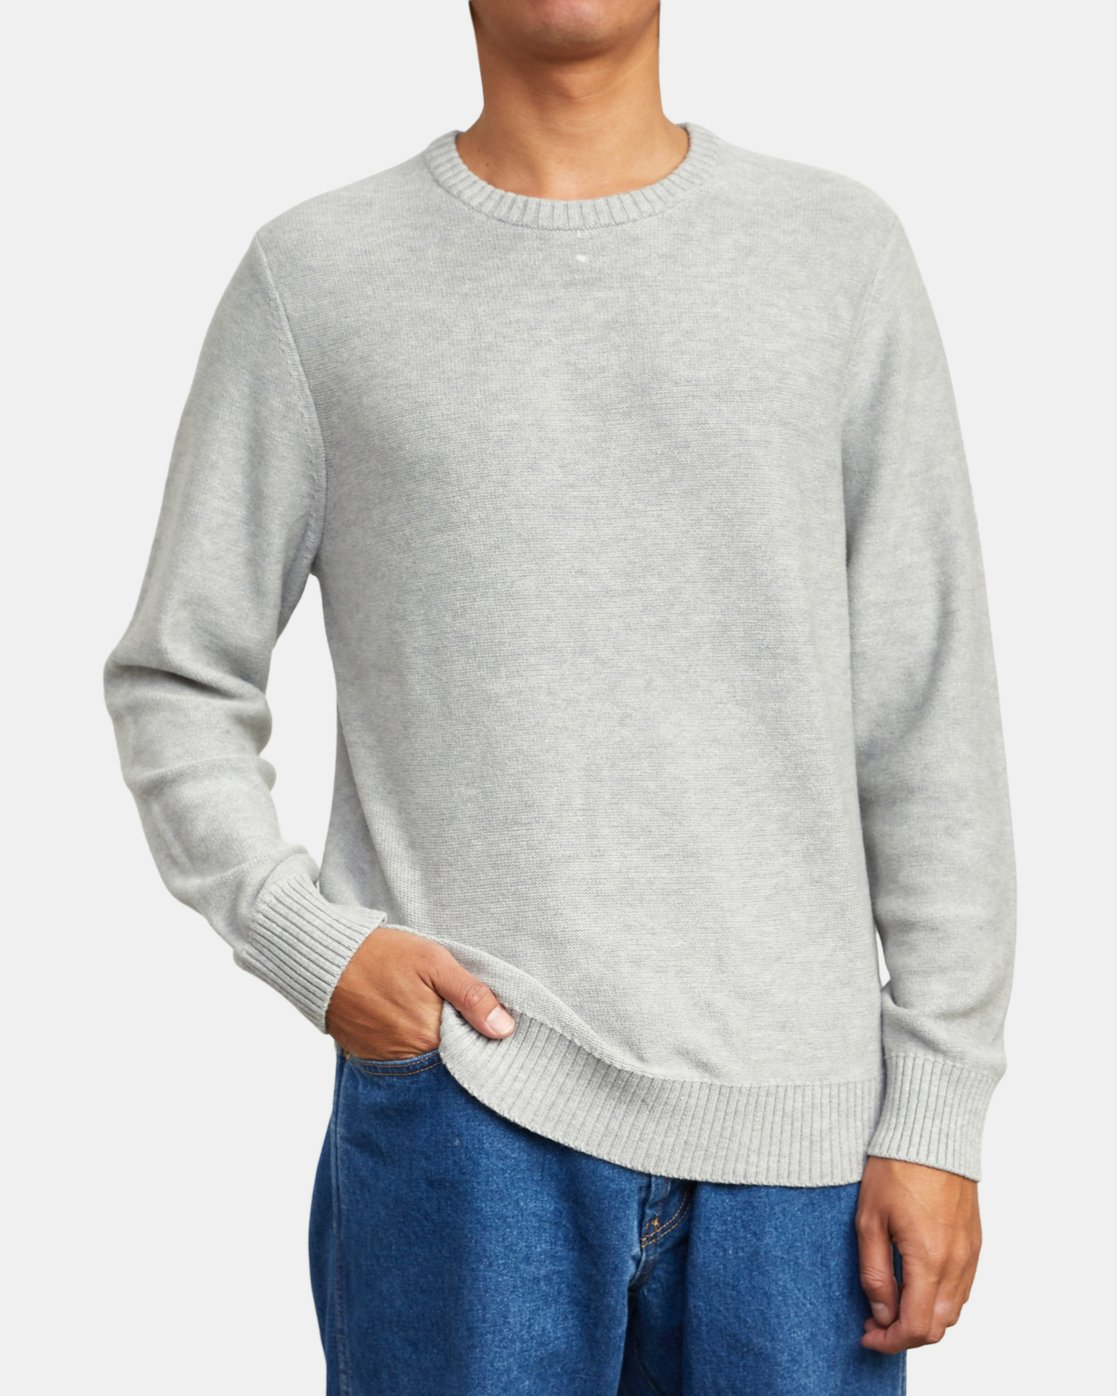 2 Witz Marl - Jumper for Men White U1JPRBRVF0 RVCA